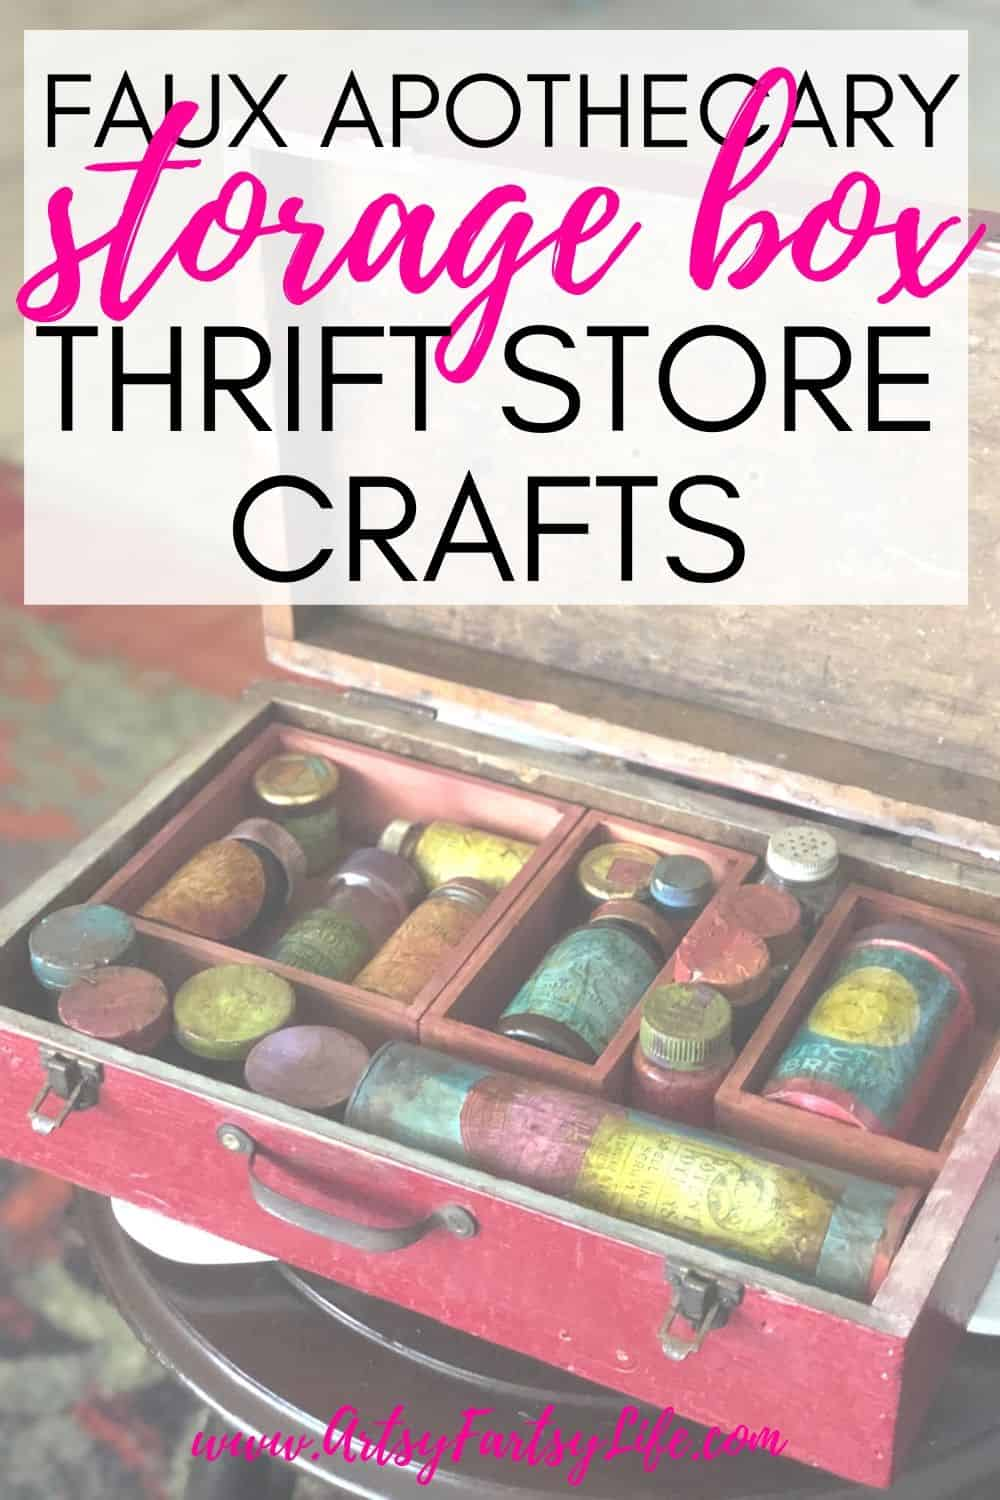 Faux Apothecary Case - Thrift Store Crafts